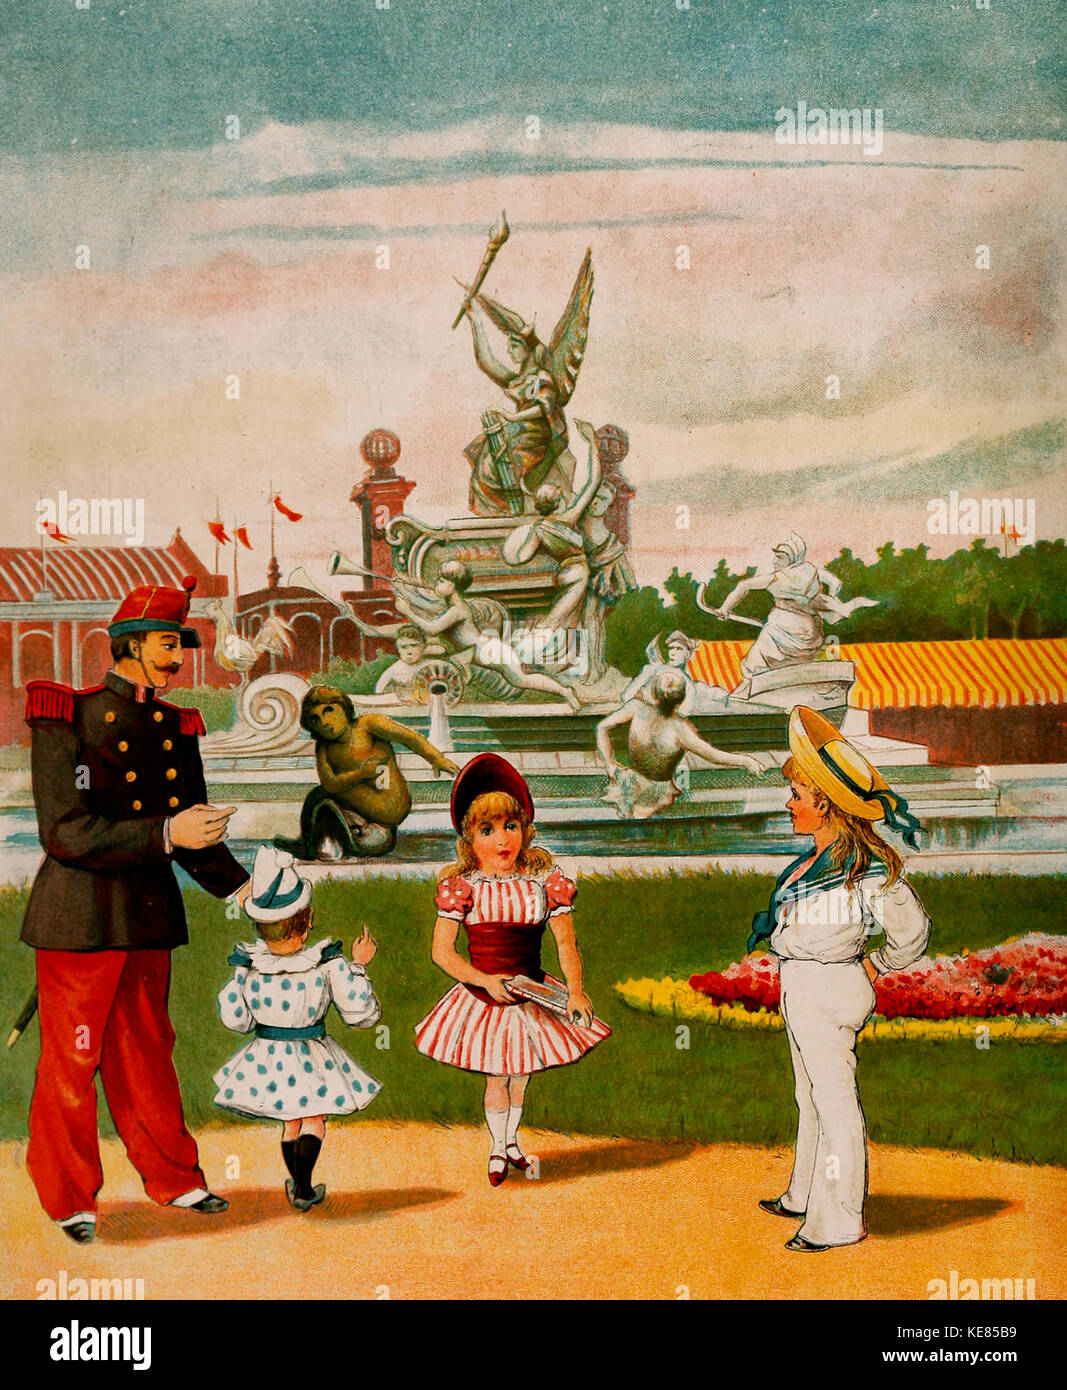 The Fountains of Progress at the Paris Universal Exposition of 1878 - Stock Image